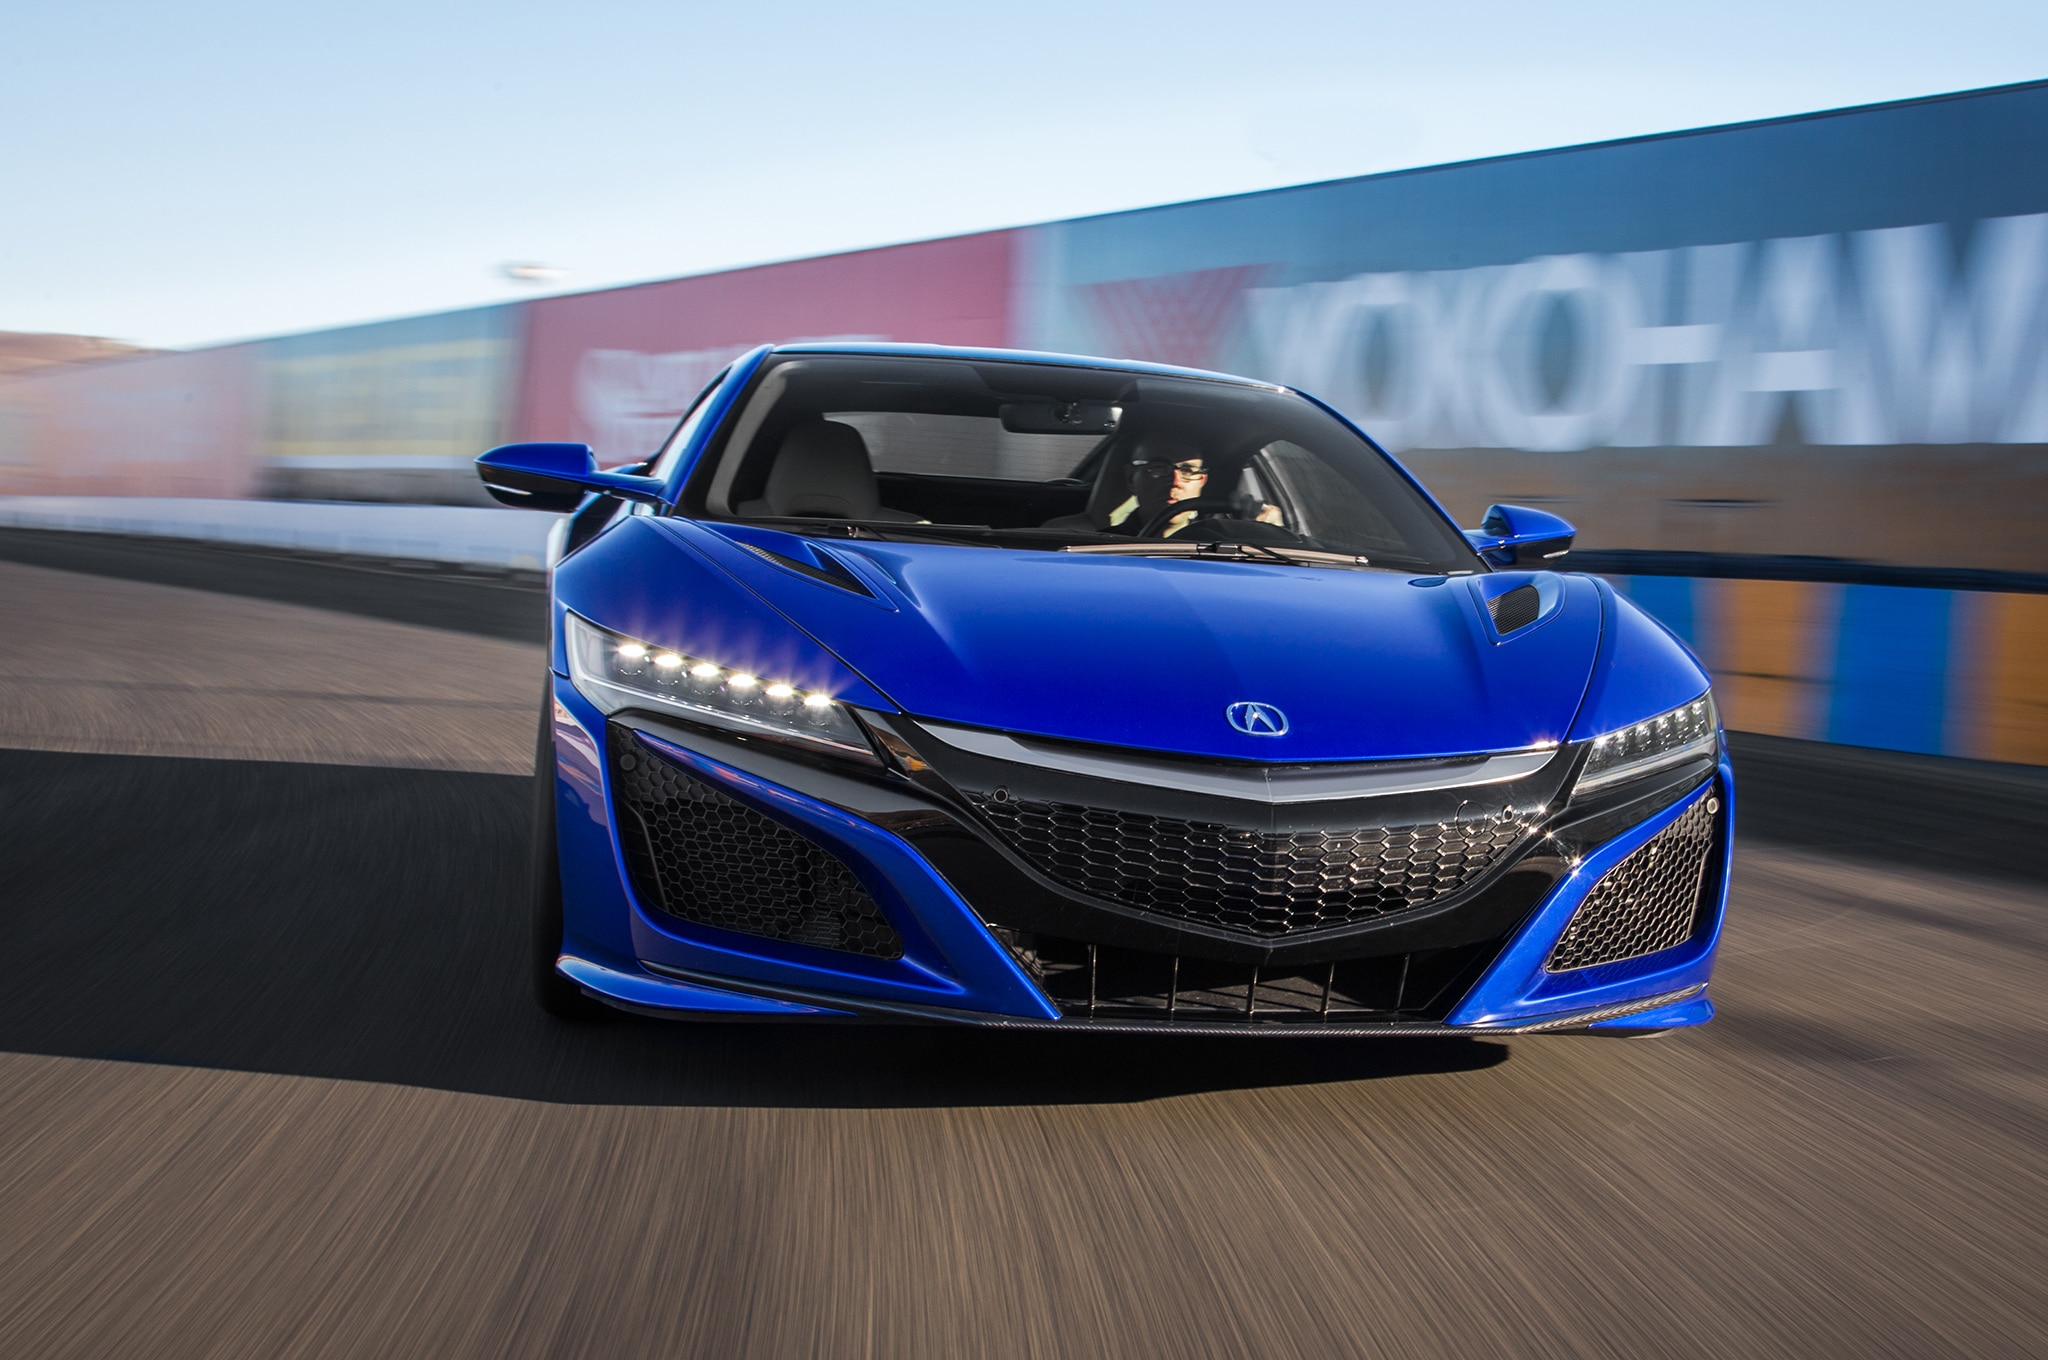 2017 Acura Nsx Priced From 157 800 207 500